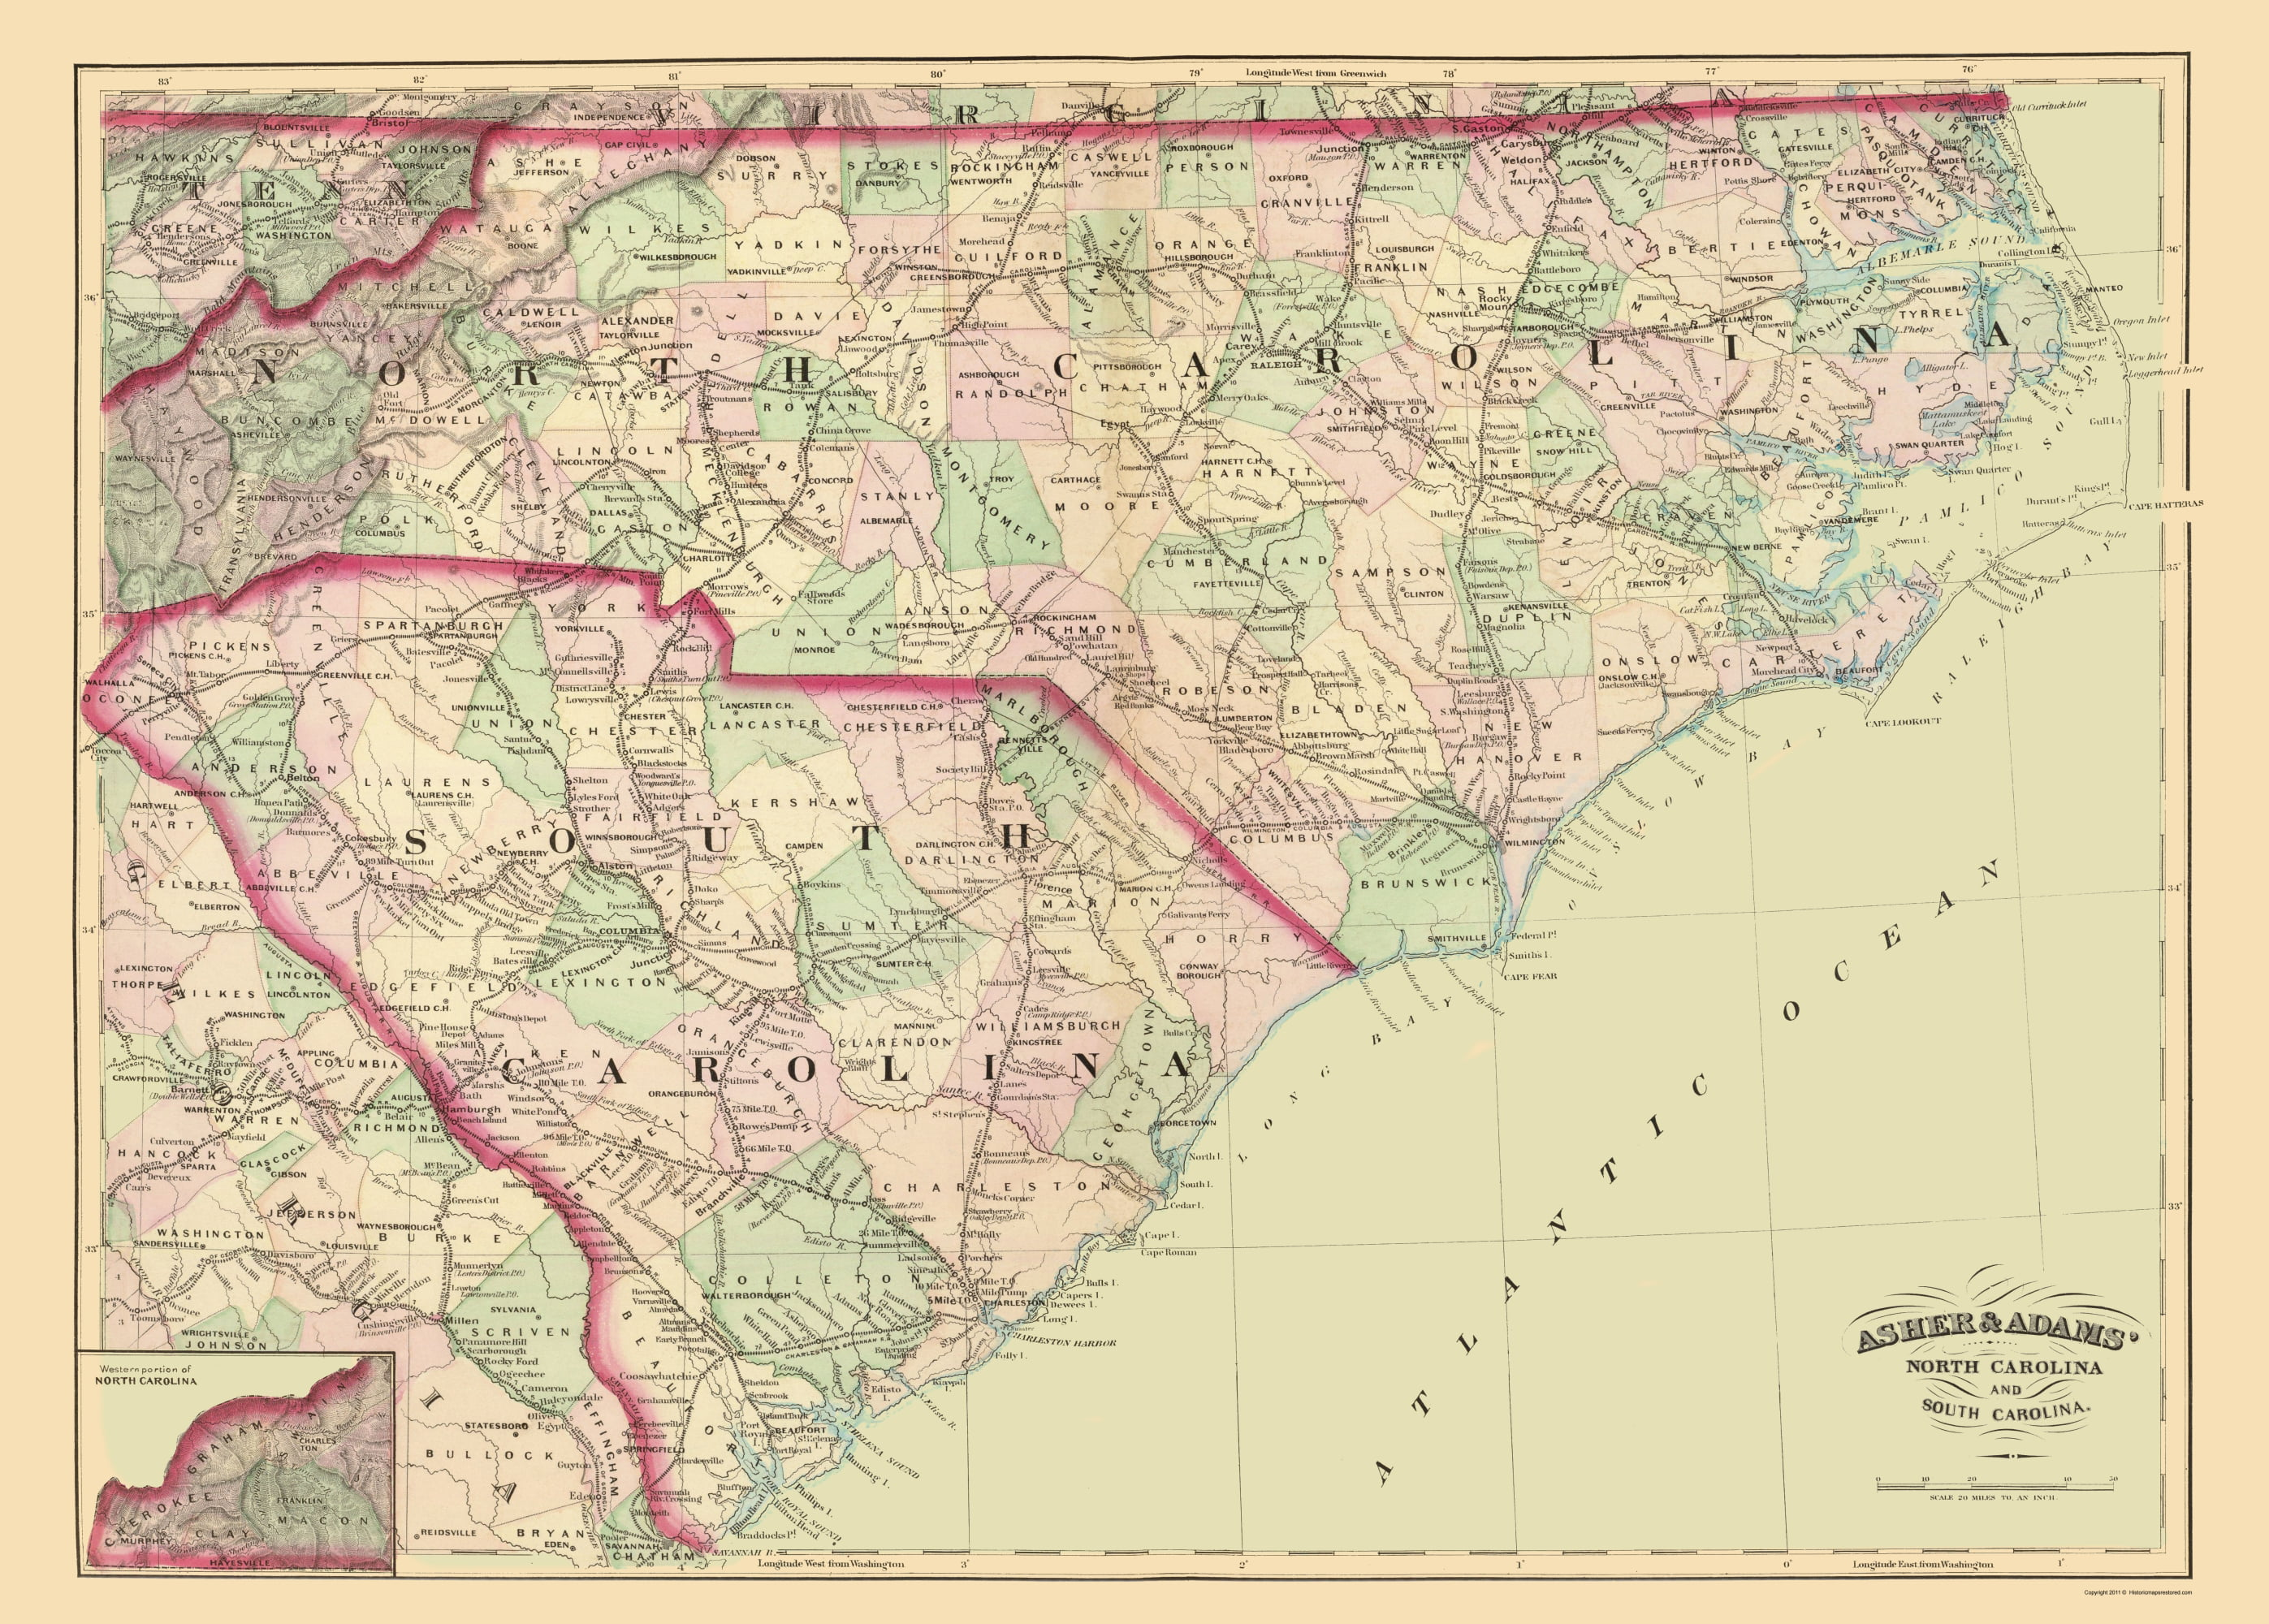 Old State Map North Carolina South Carolina Asher 1872 23 X